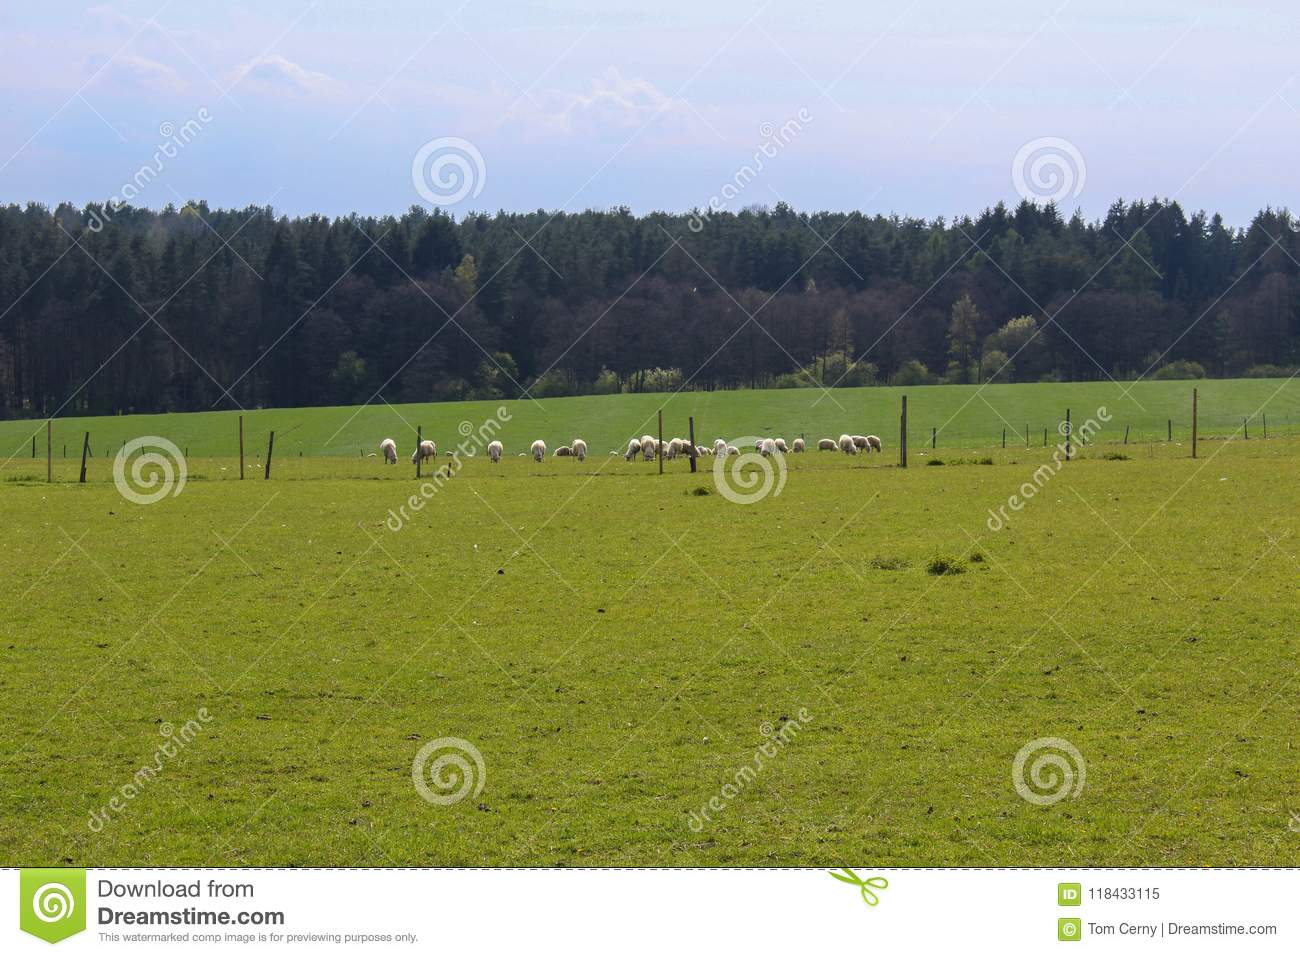 Sheep on grass with forest and blue sky. Czech landscape